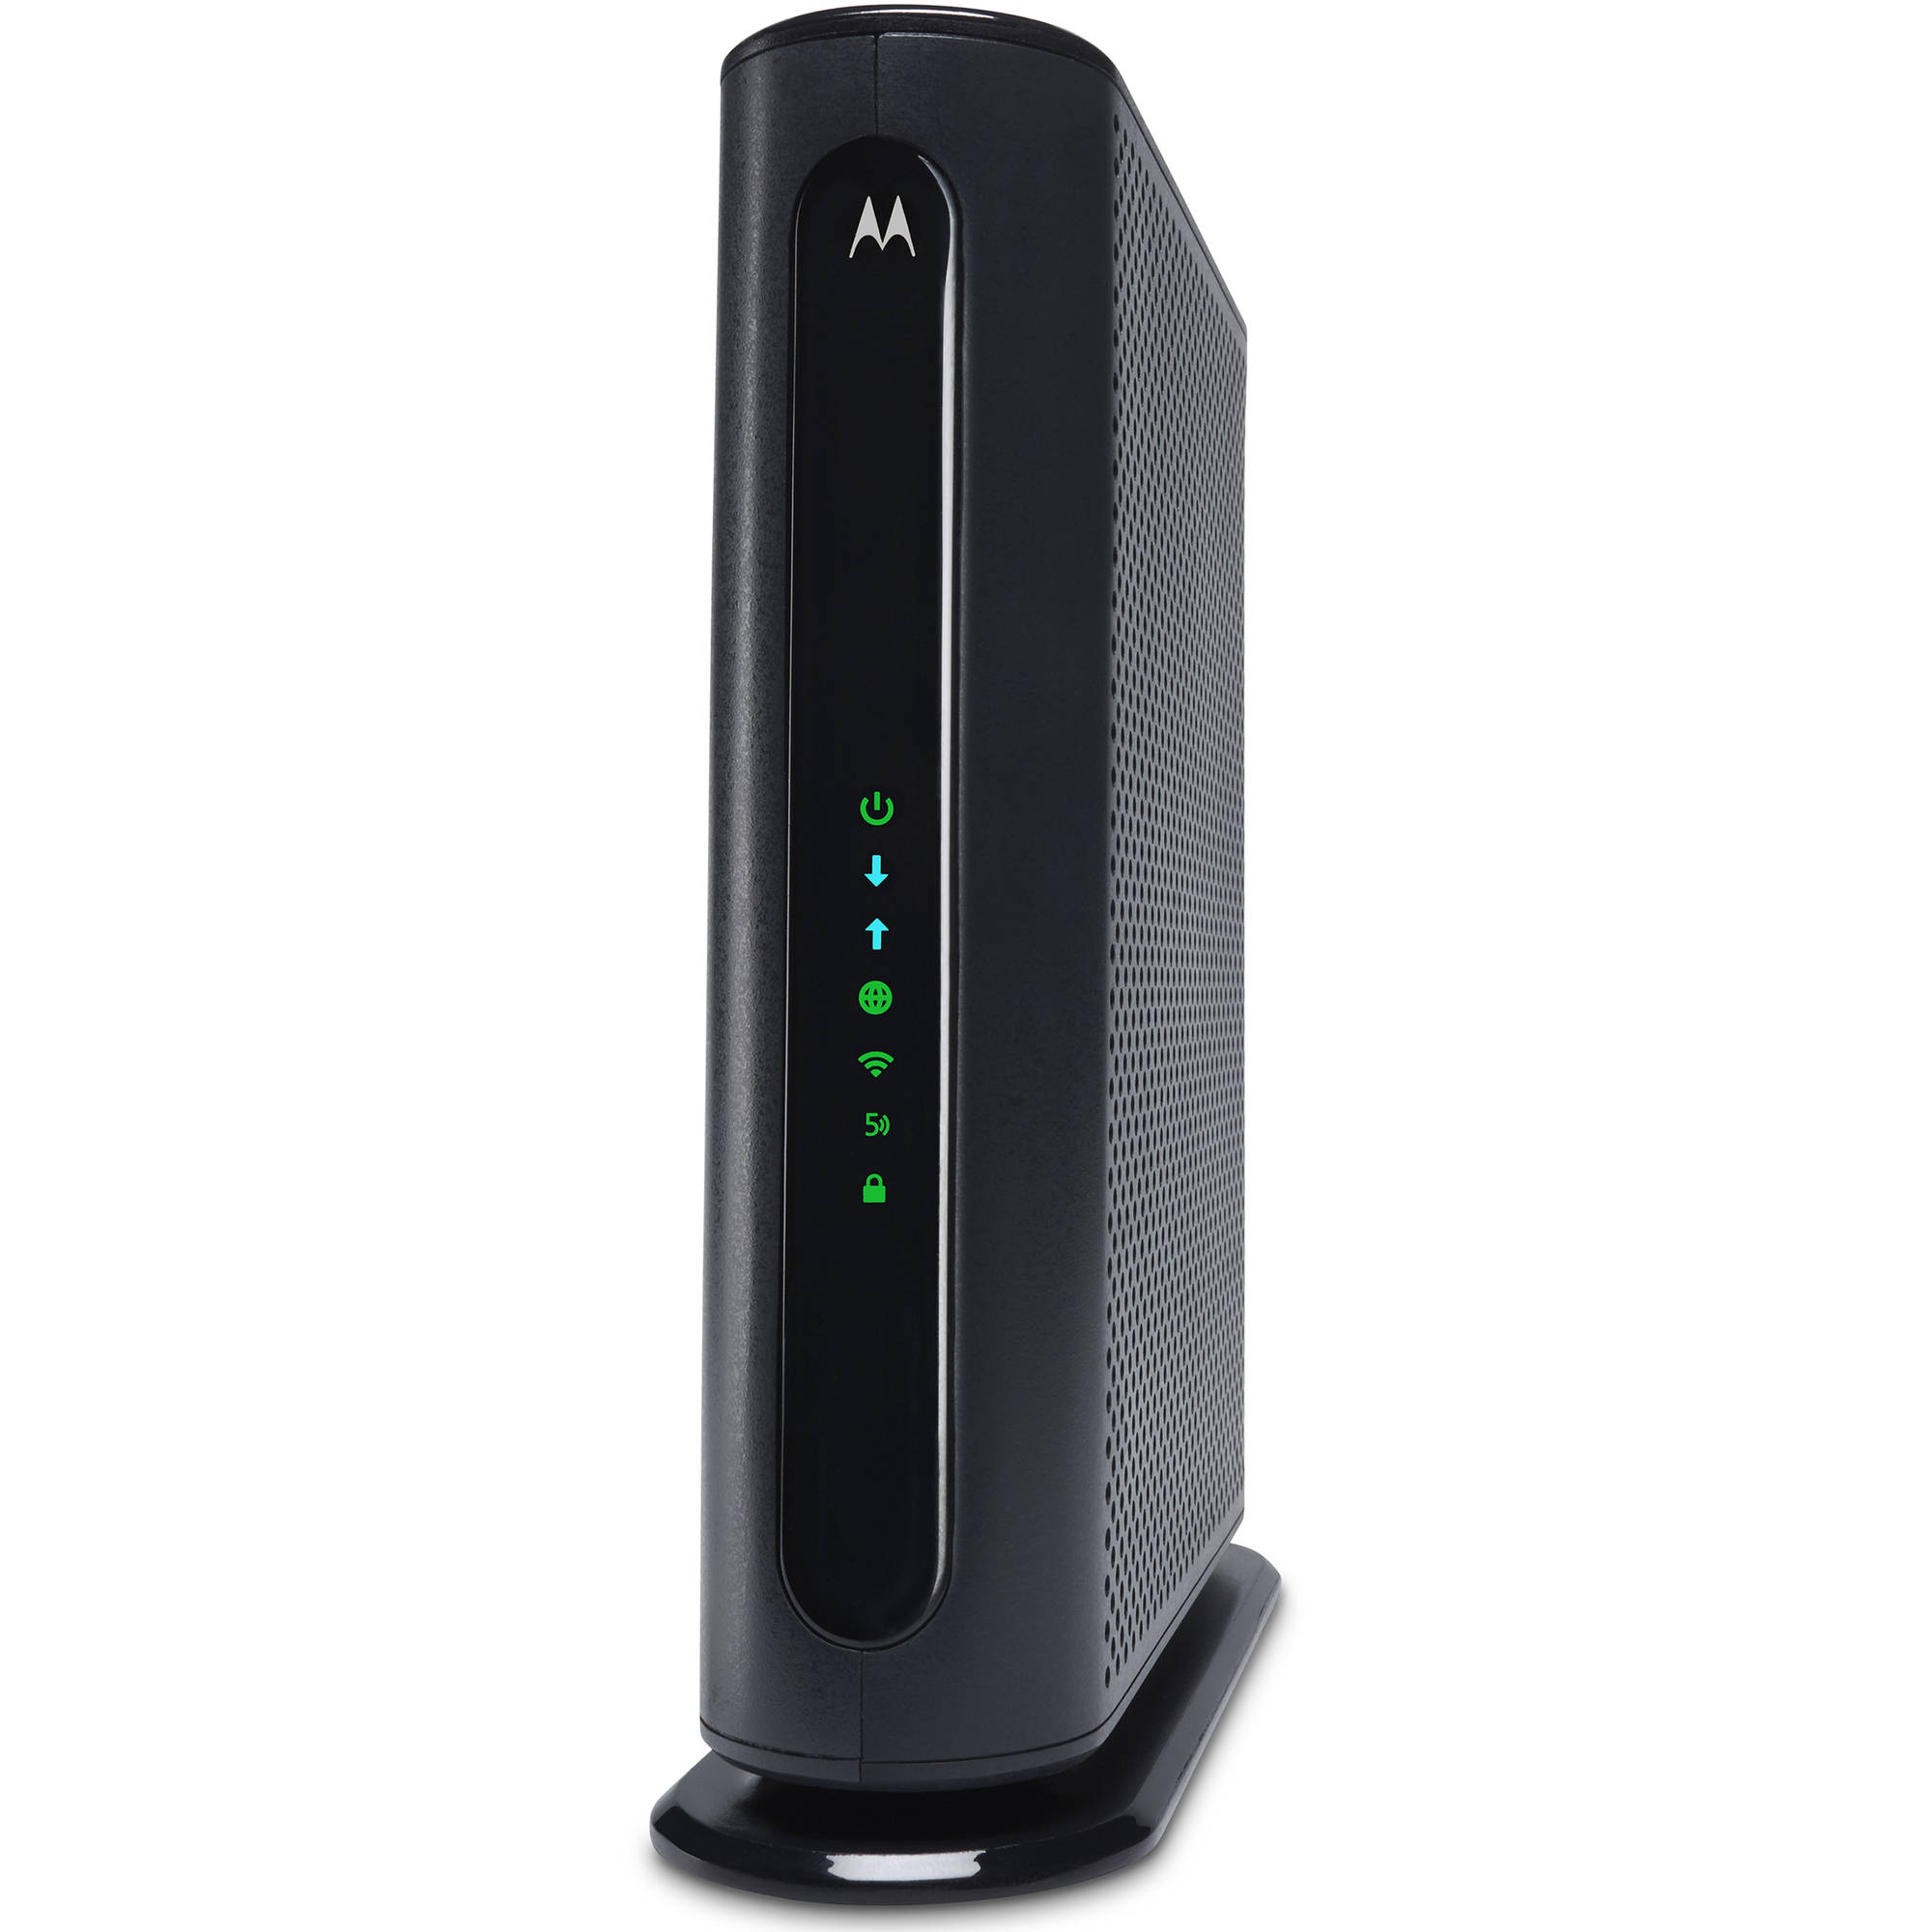 Gateway 4020 Conexant Modem Drivers for Windows Download